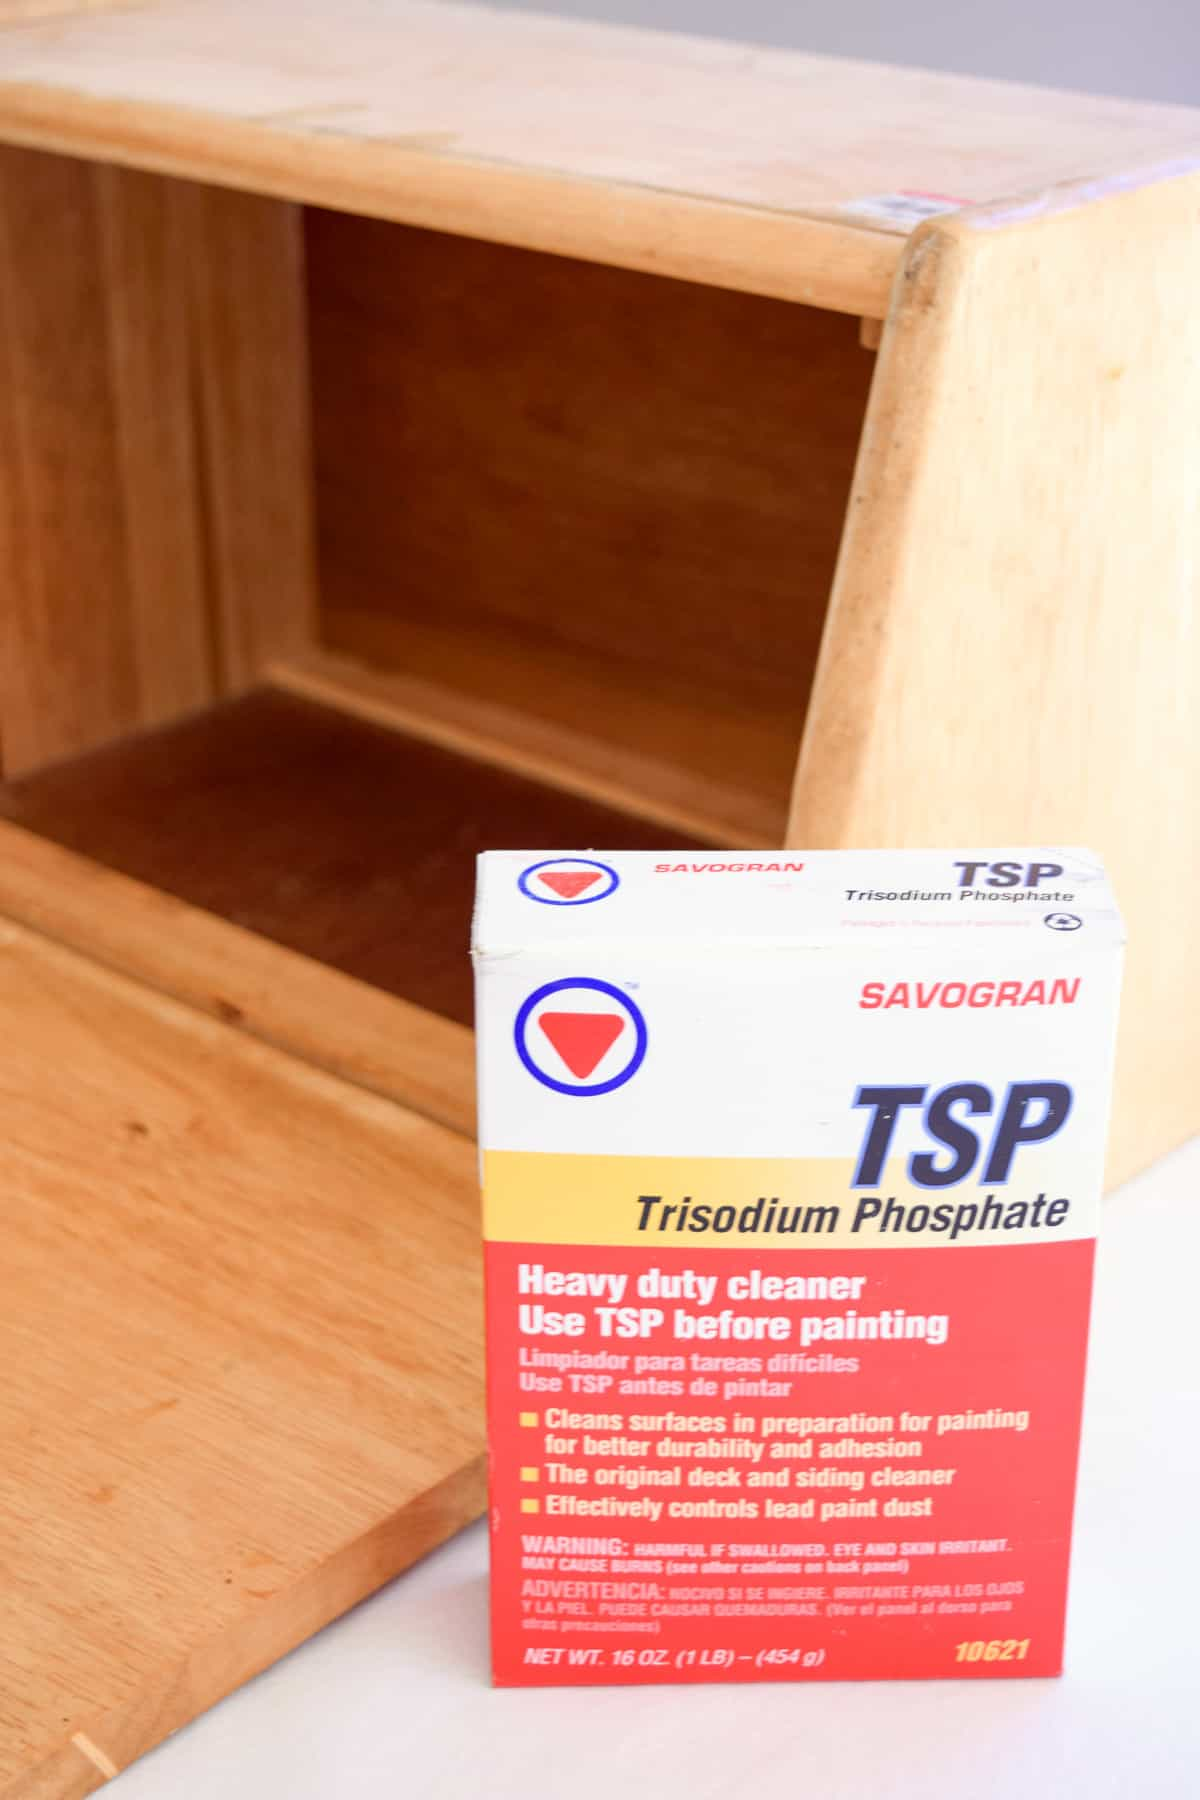 TSP cleaner to clean an old bread box before painting